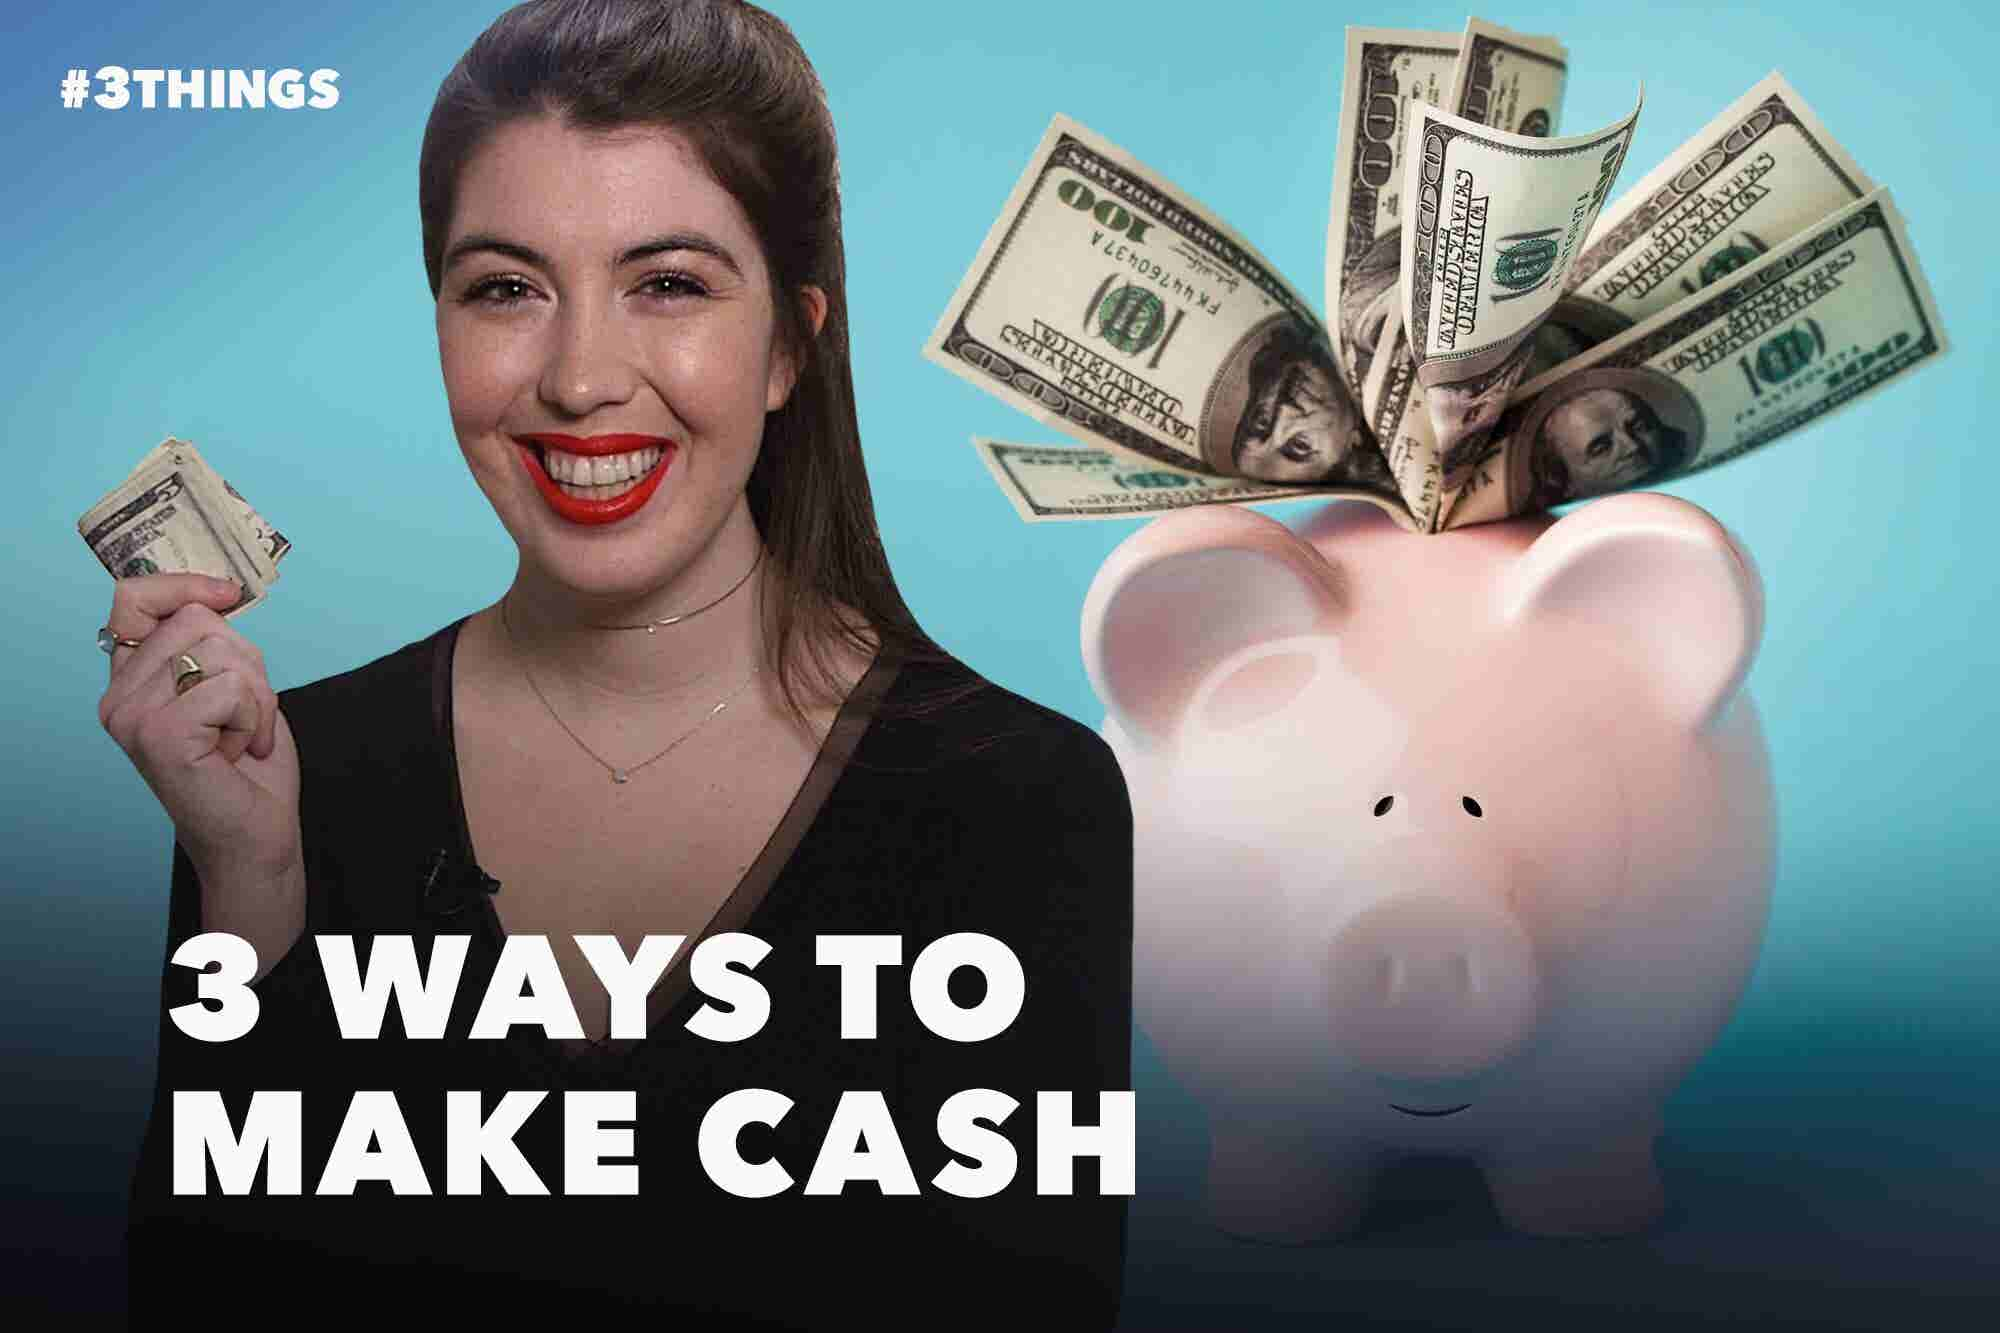 3 Ways to Make Quick Cash on the Side